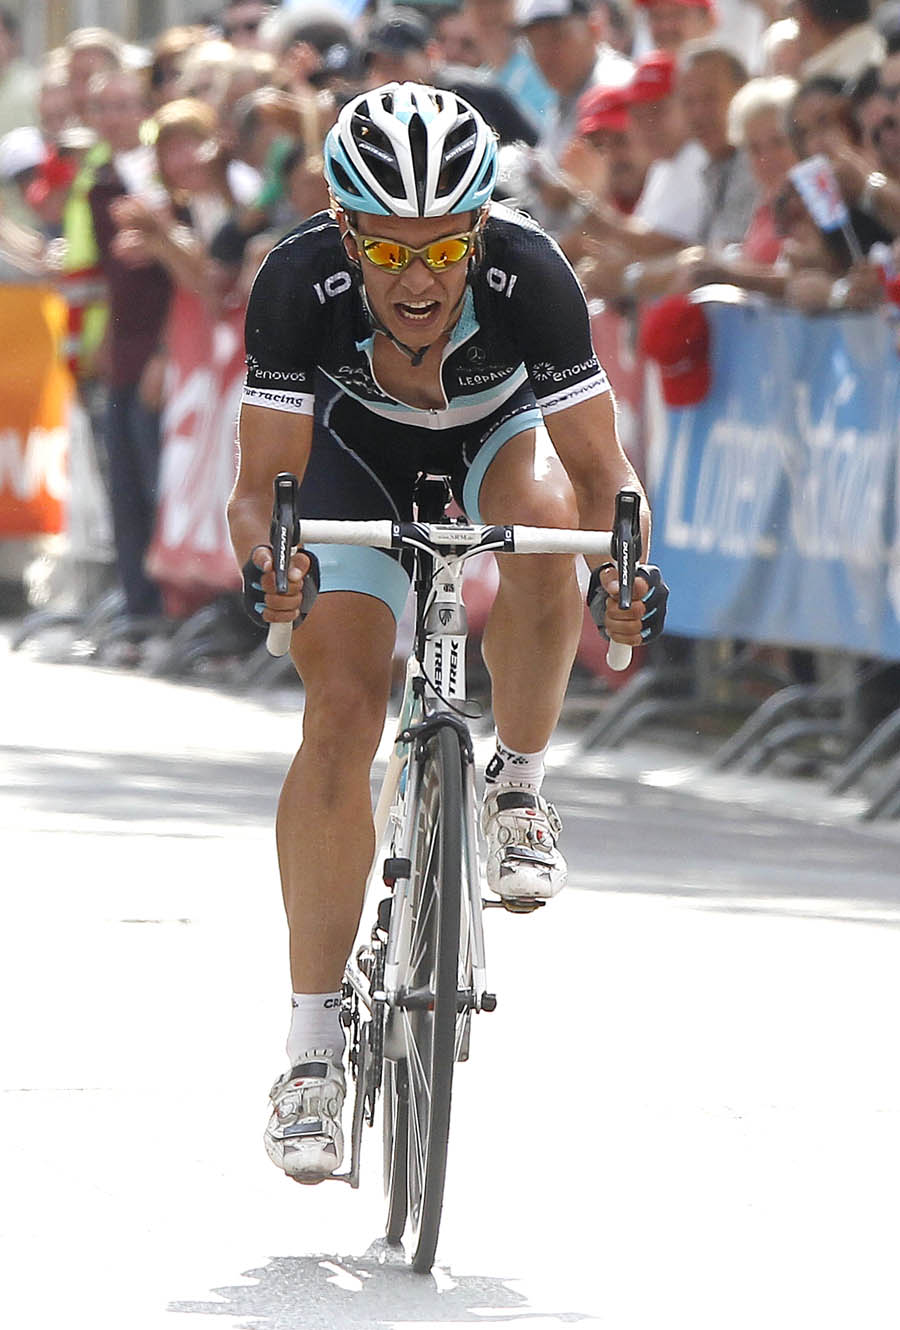 Linus Gerdemann goes solo, Tour of Luxembourg 2011, stage 2